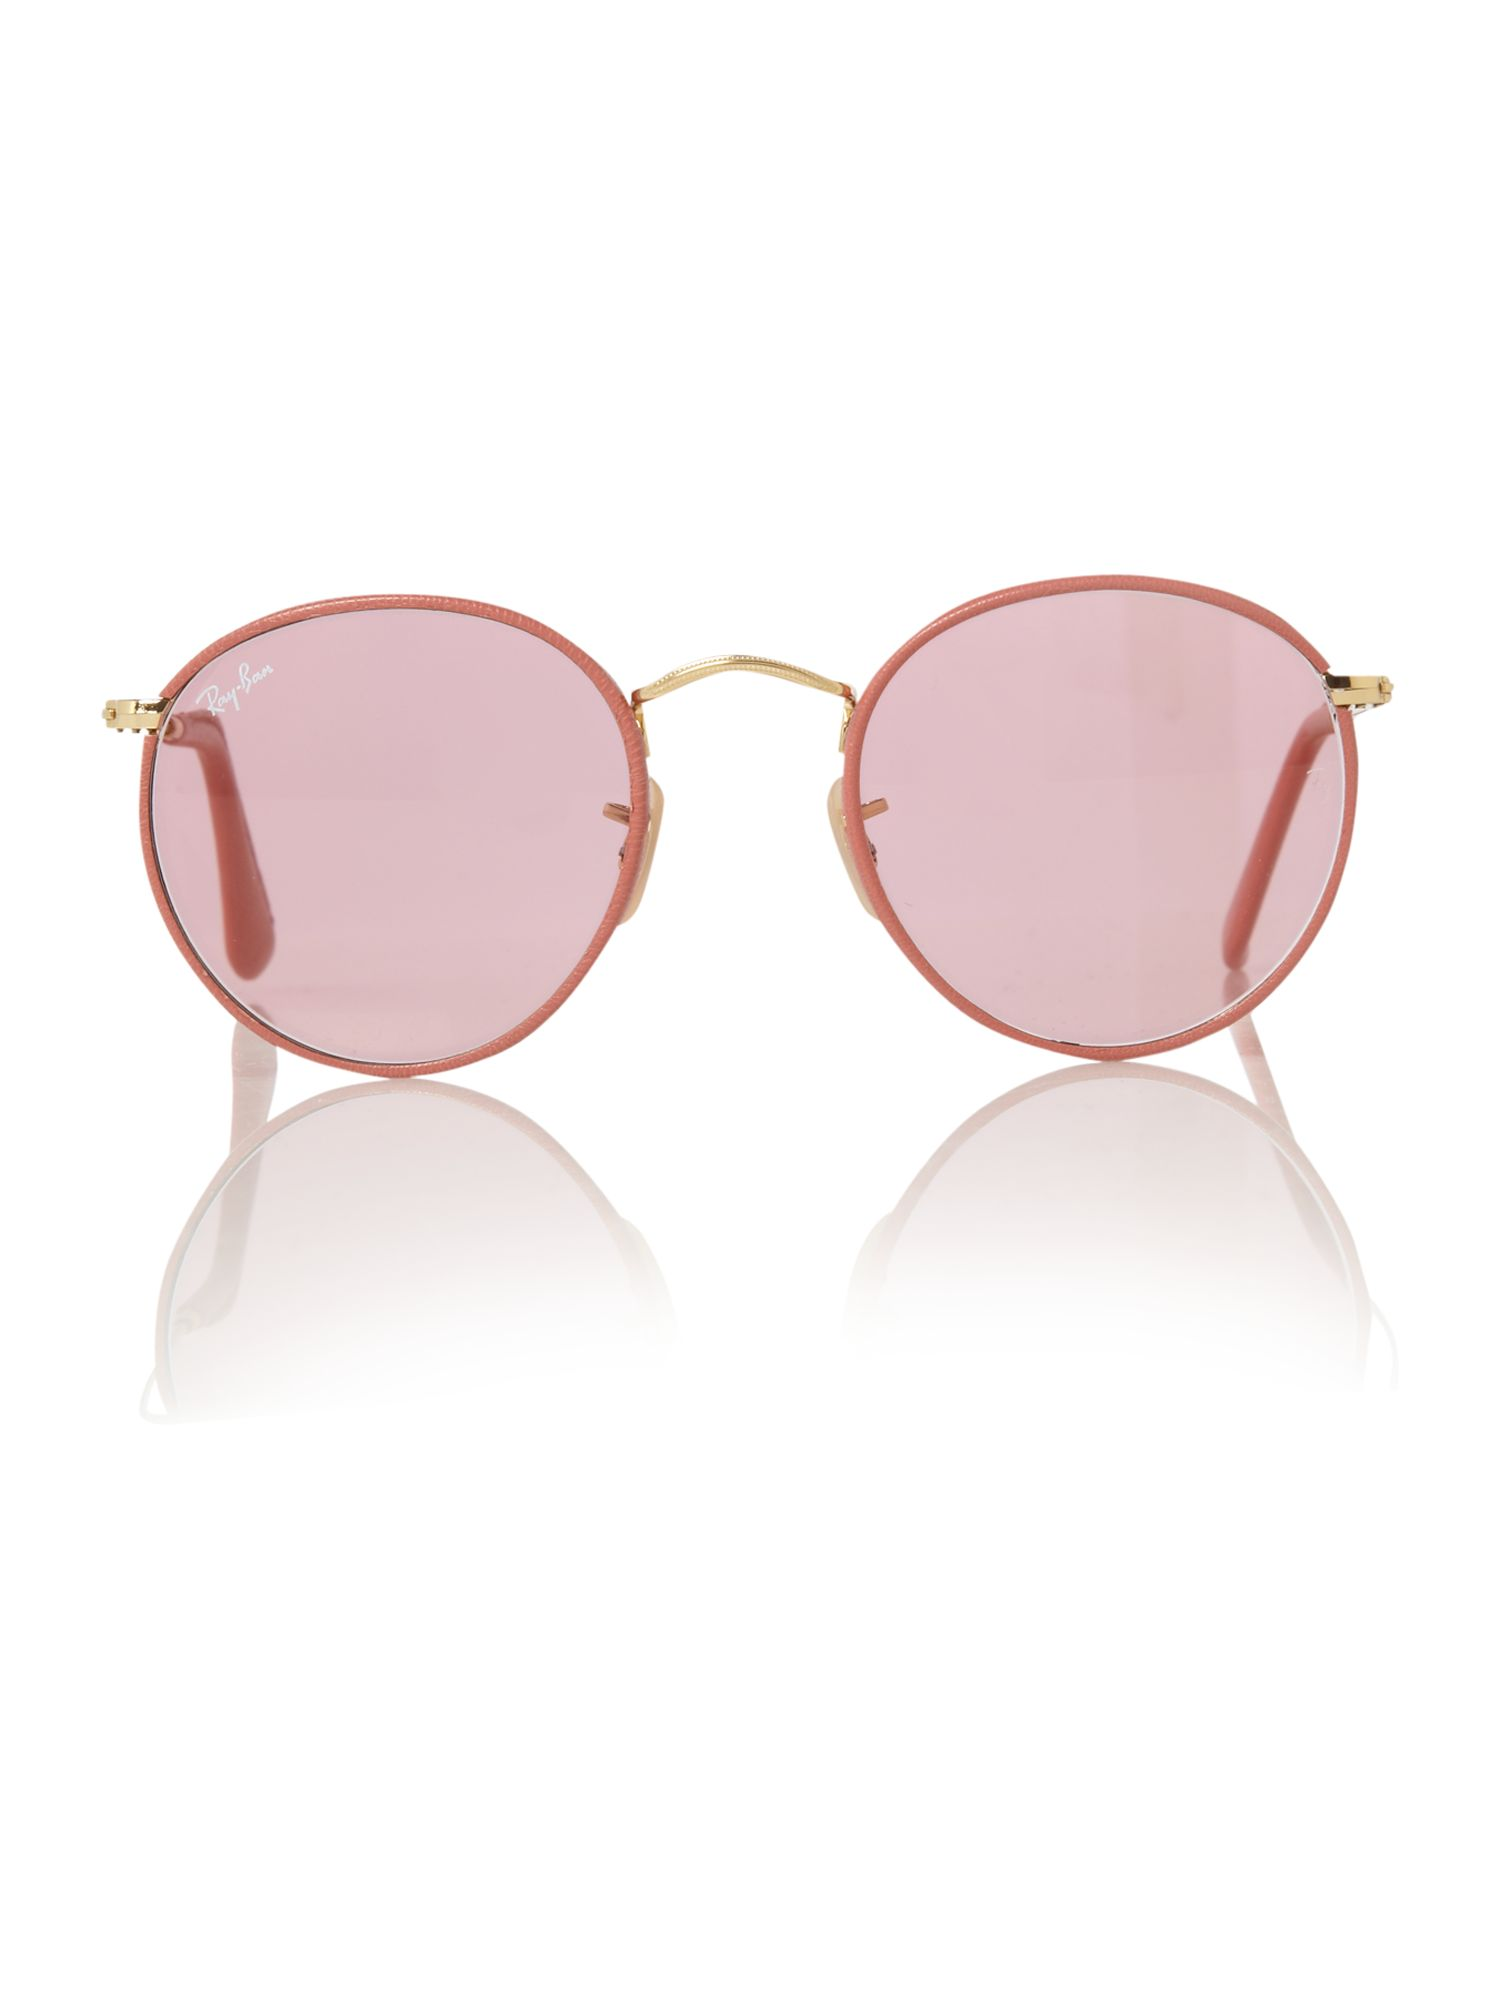 Unisex RB3475Q Gold Round Sunglasses